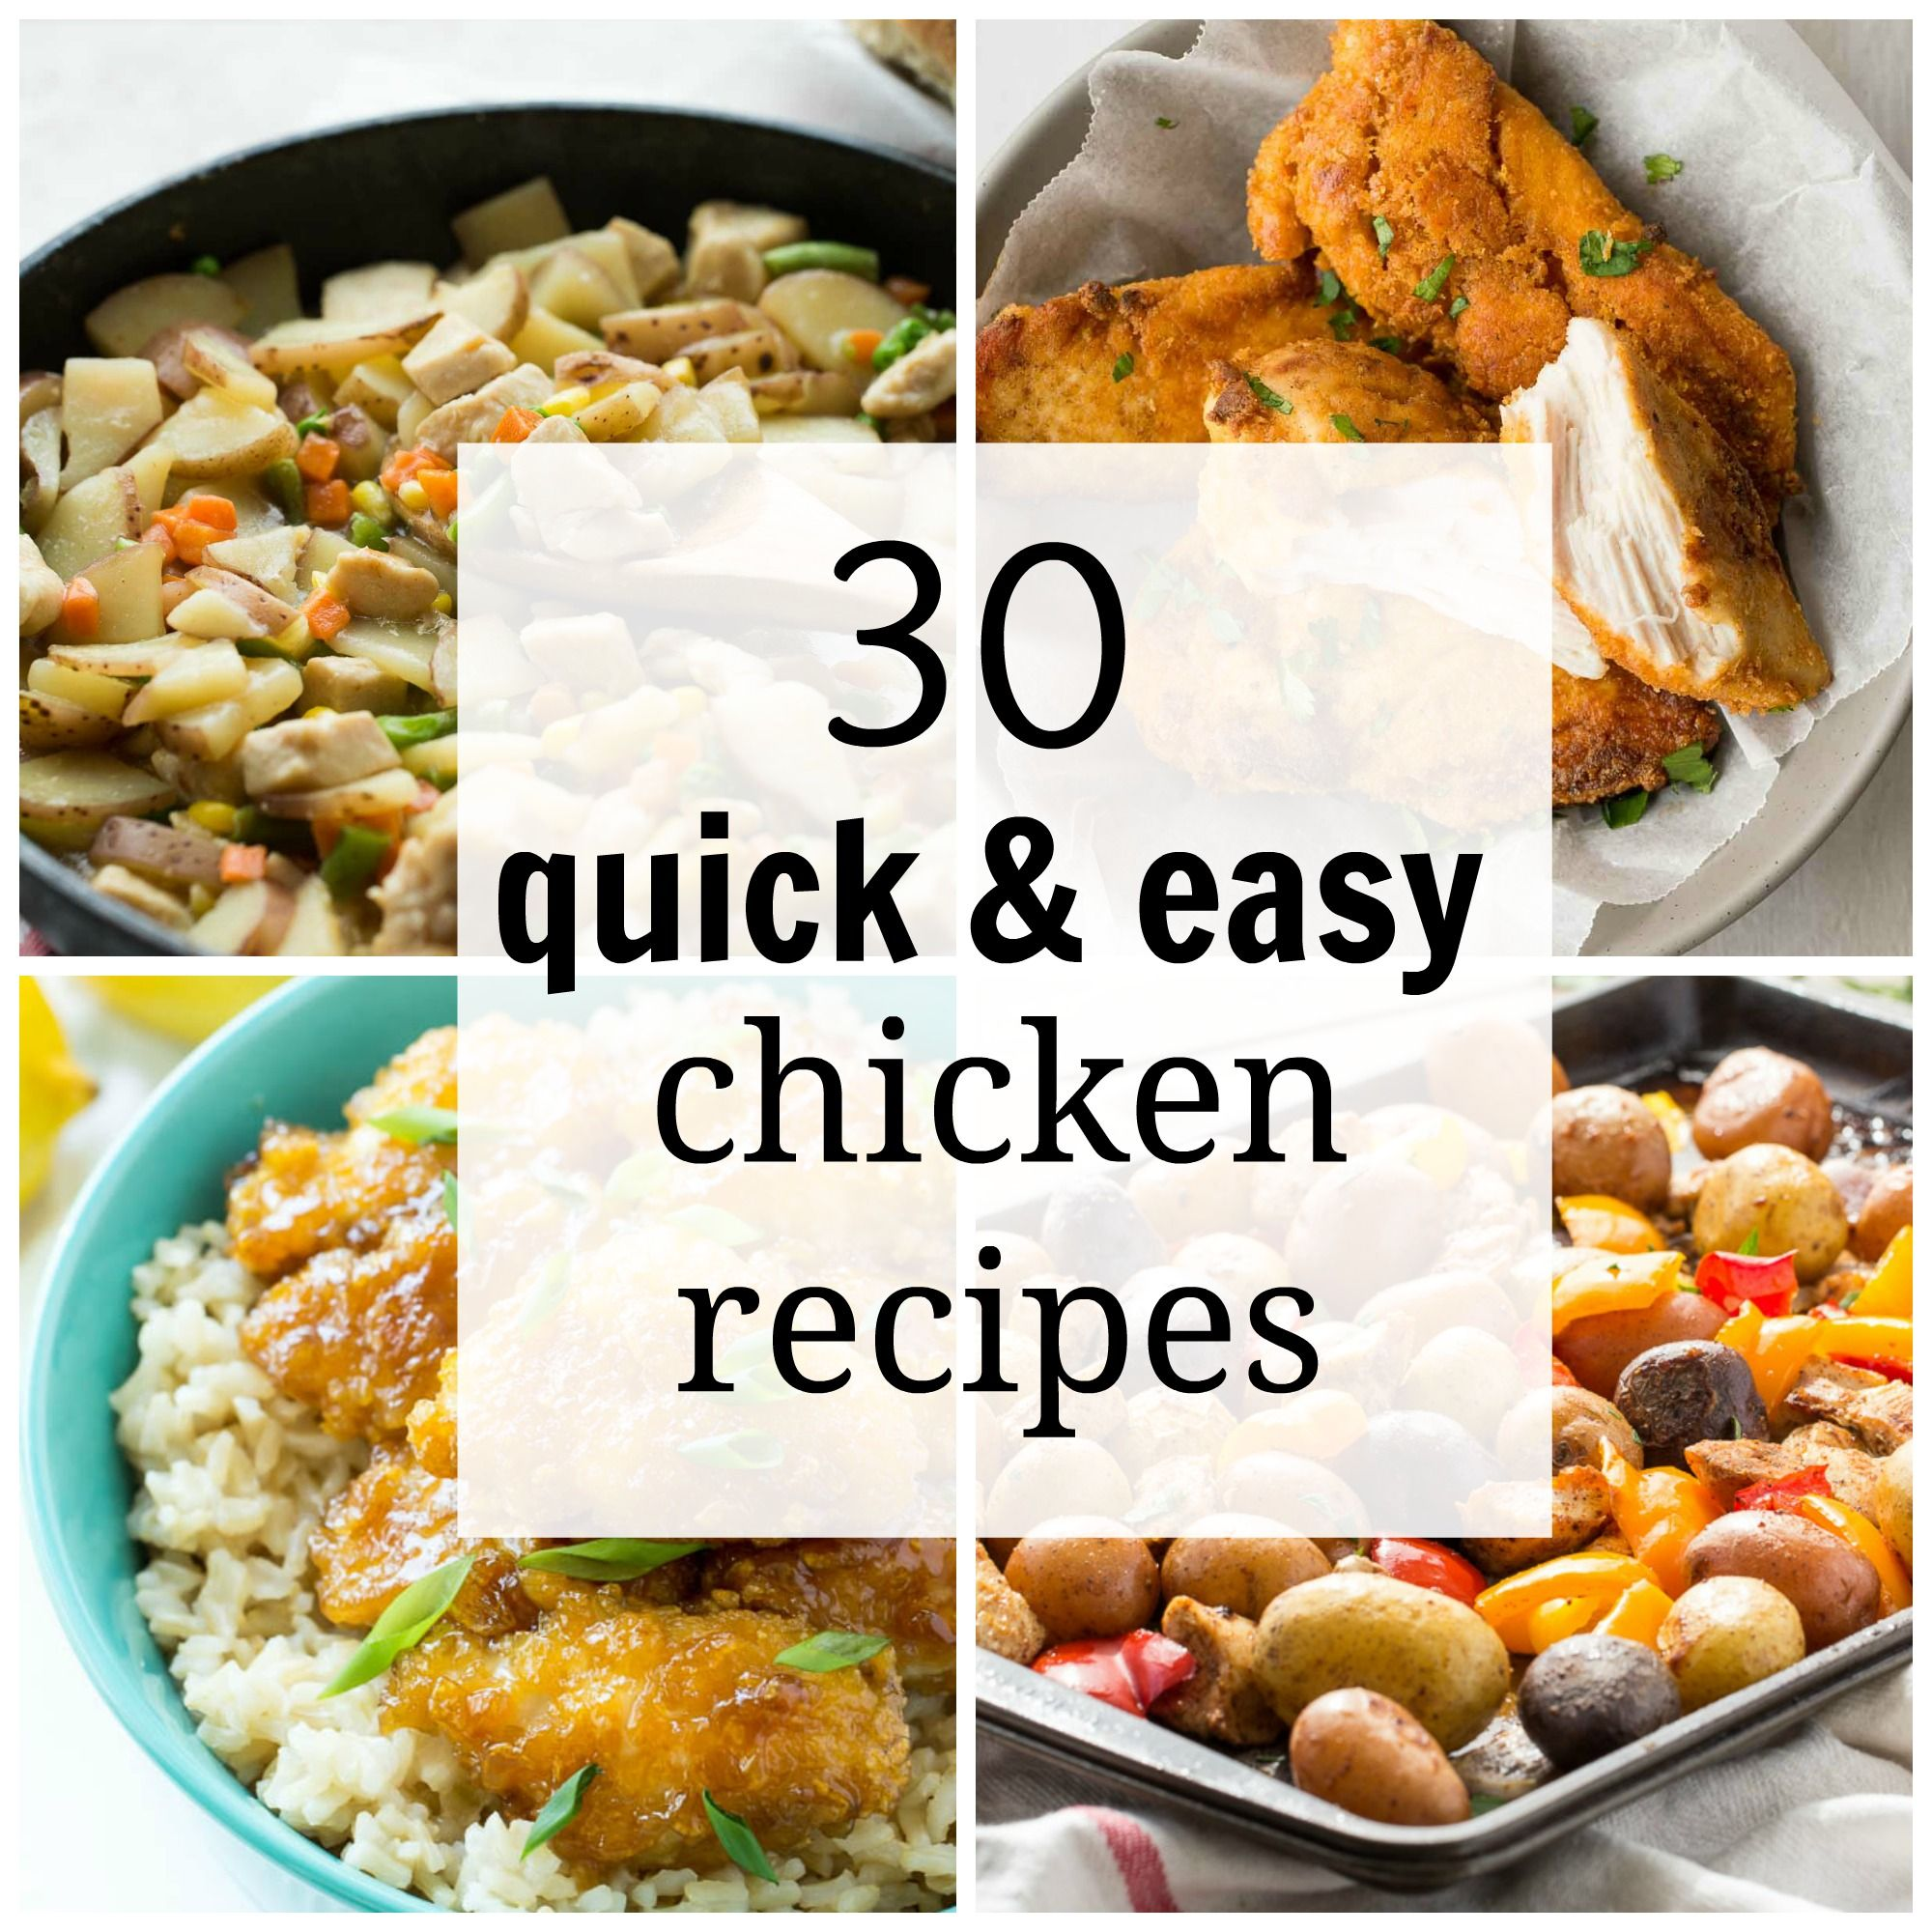 30 Quick And Easy Chicken Recipes For Busy Weeknights